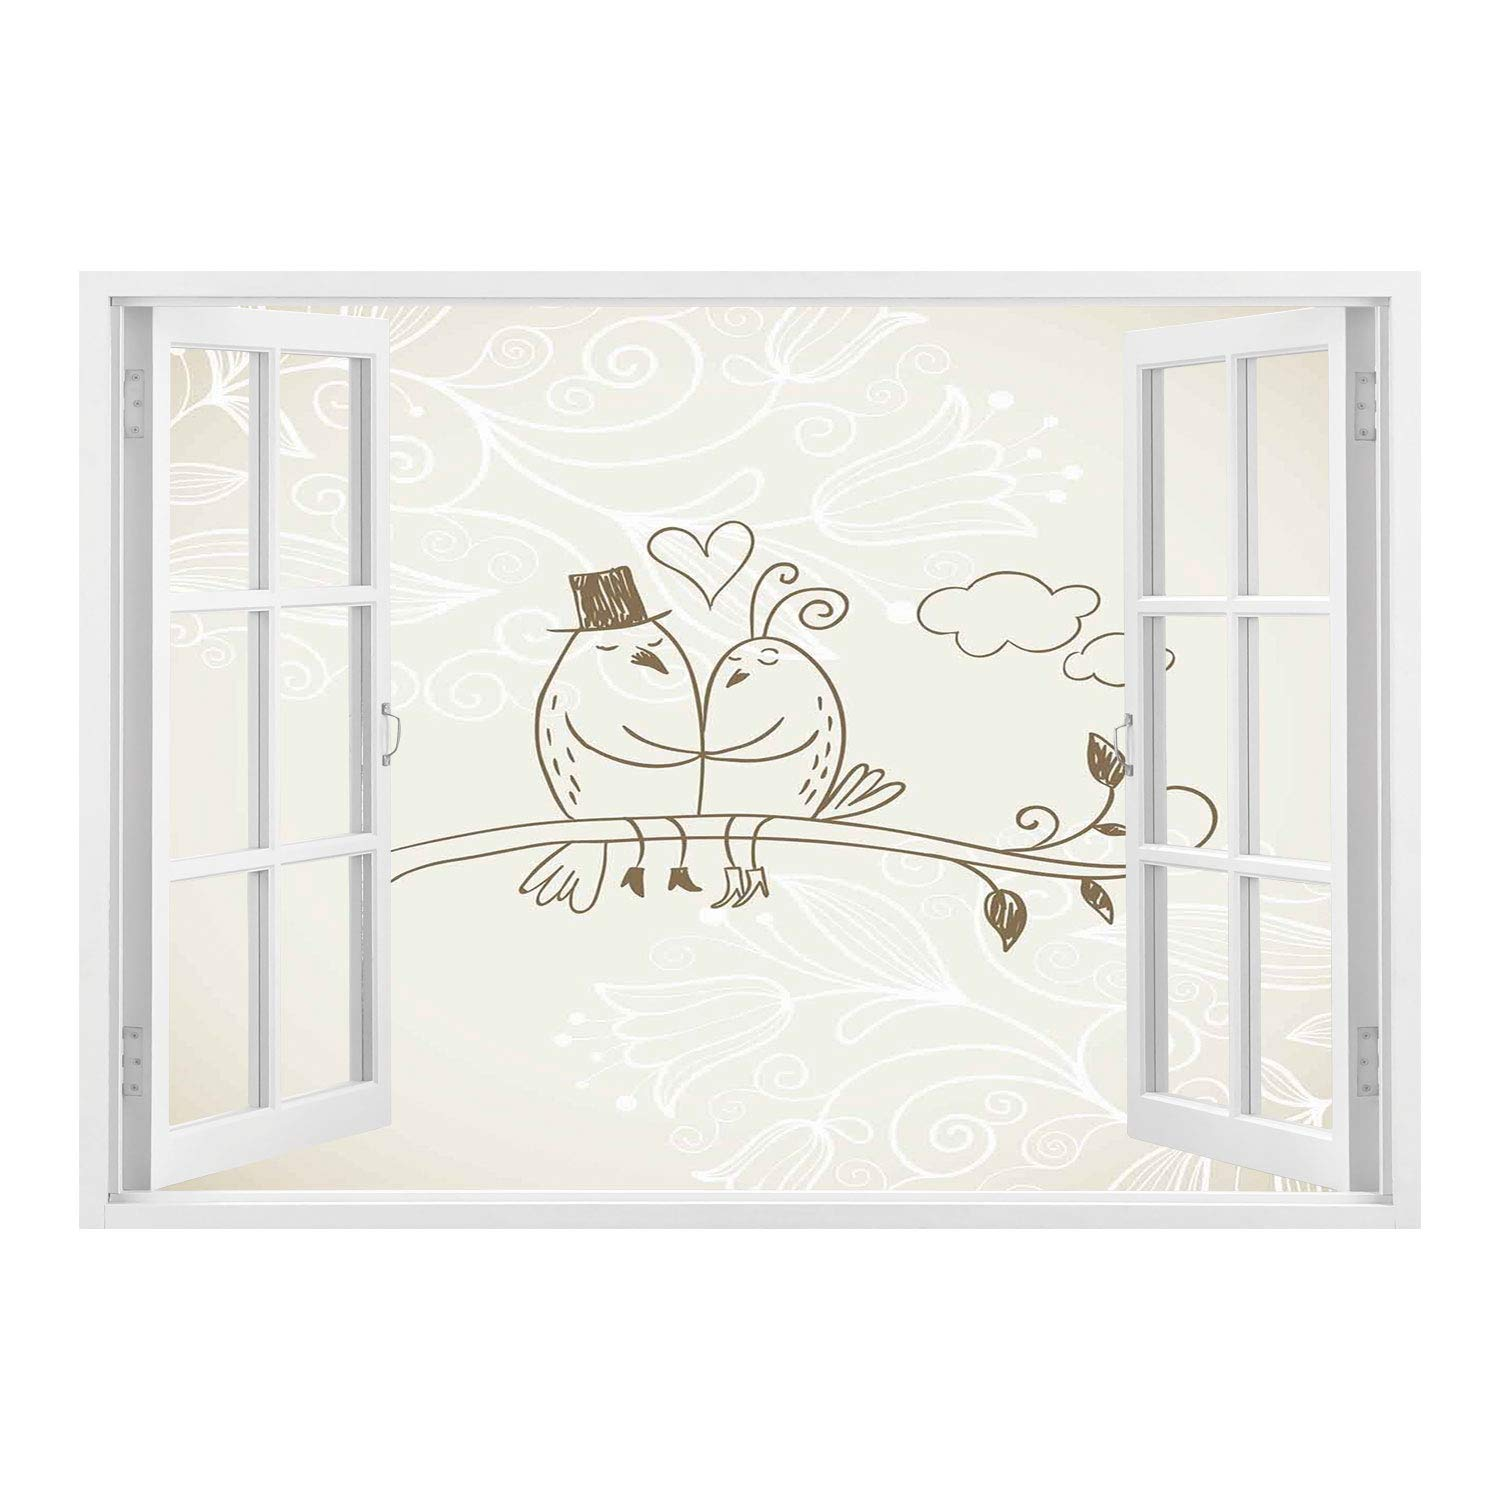 Scocici peel and stick fabric illusion 3d wall decal photo sticker wedding decorationsromantic hand drawing of a two birds on branch in love husband wife